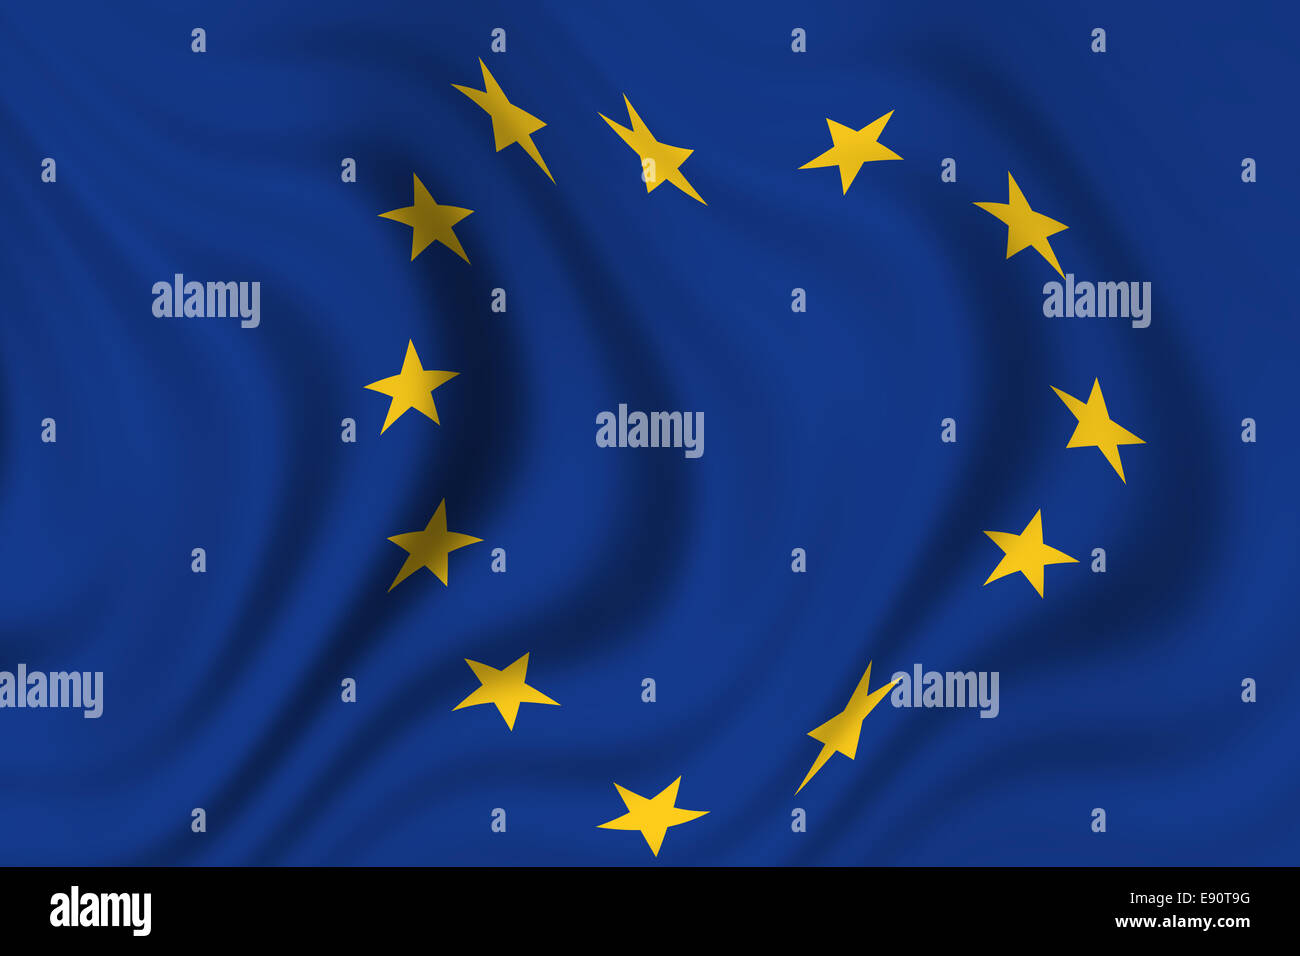 Flag of European Union - Stock Image